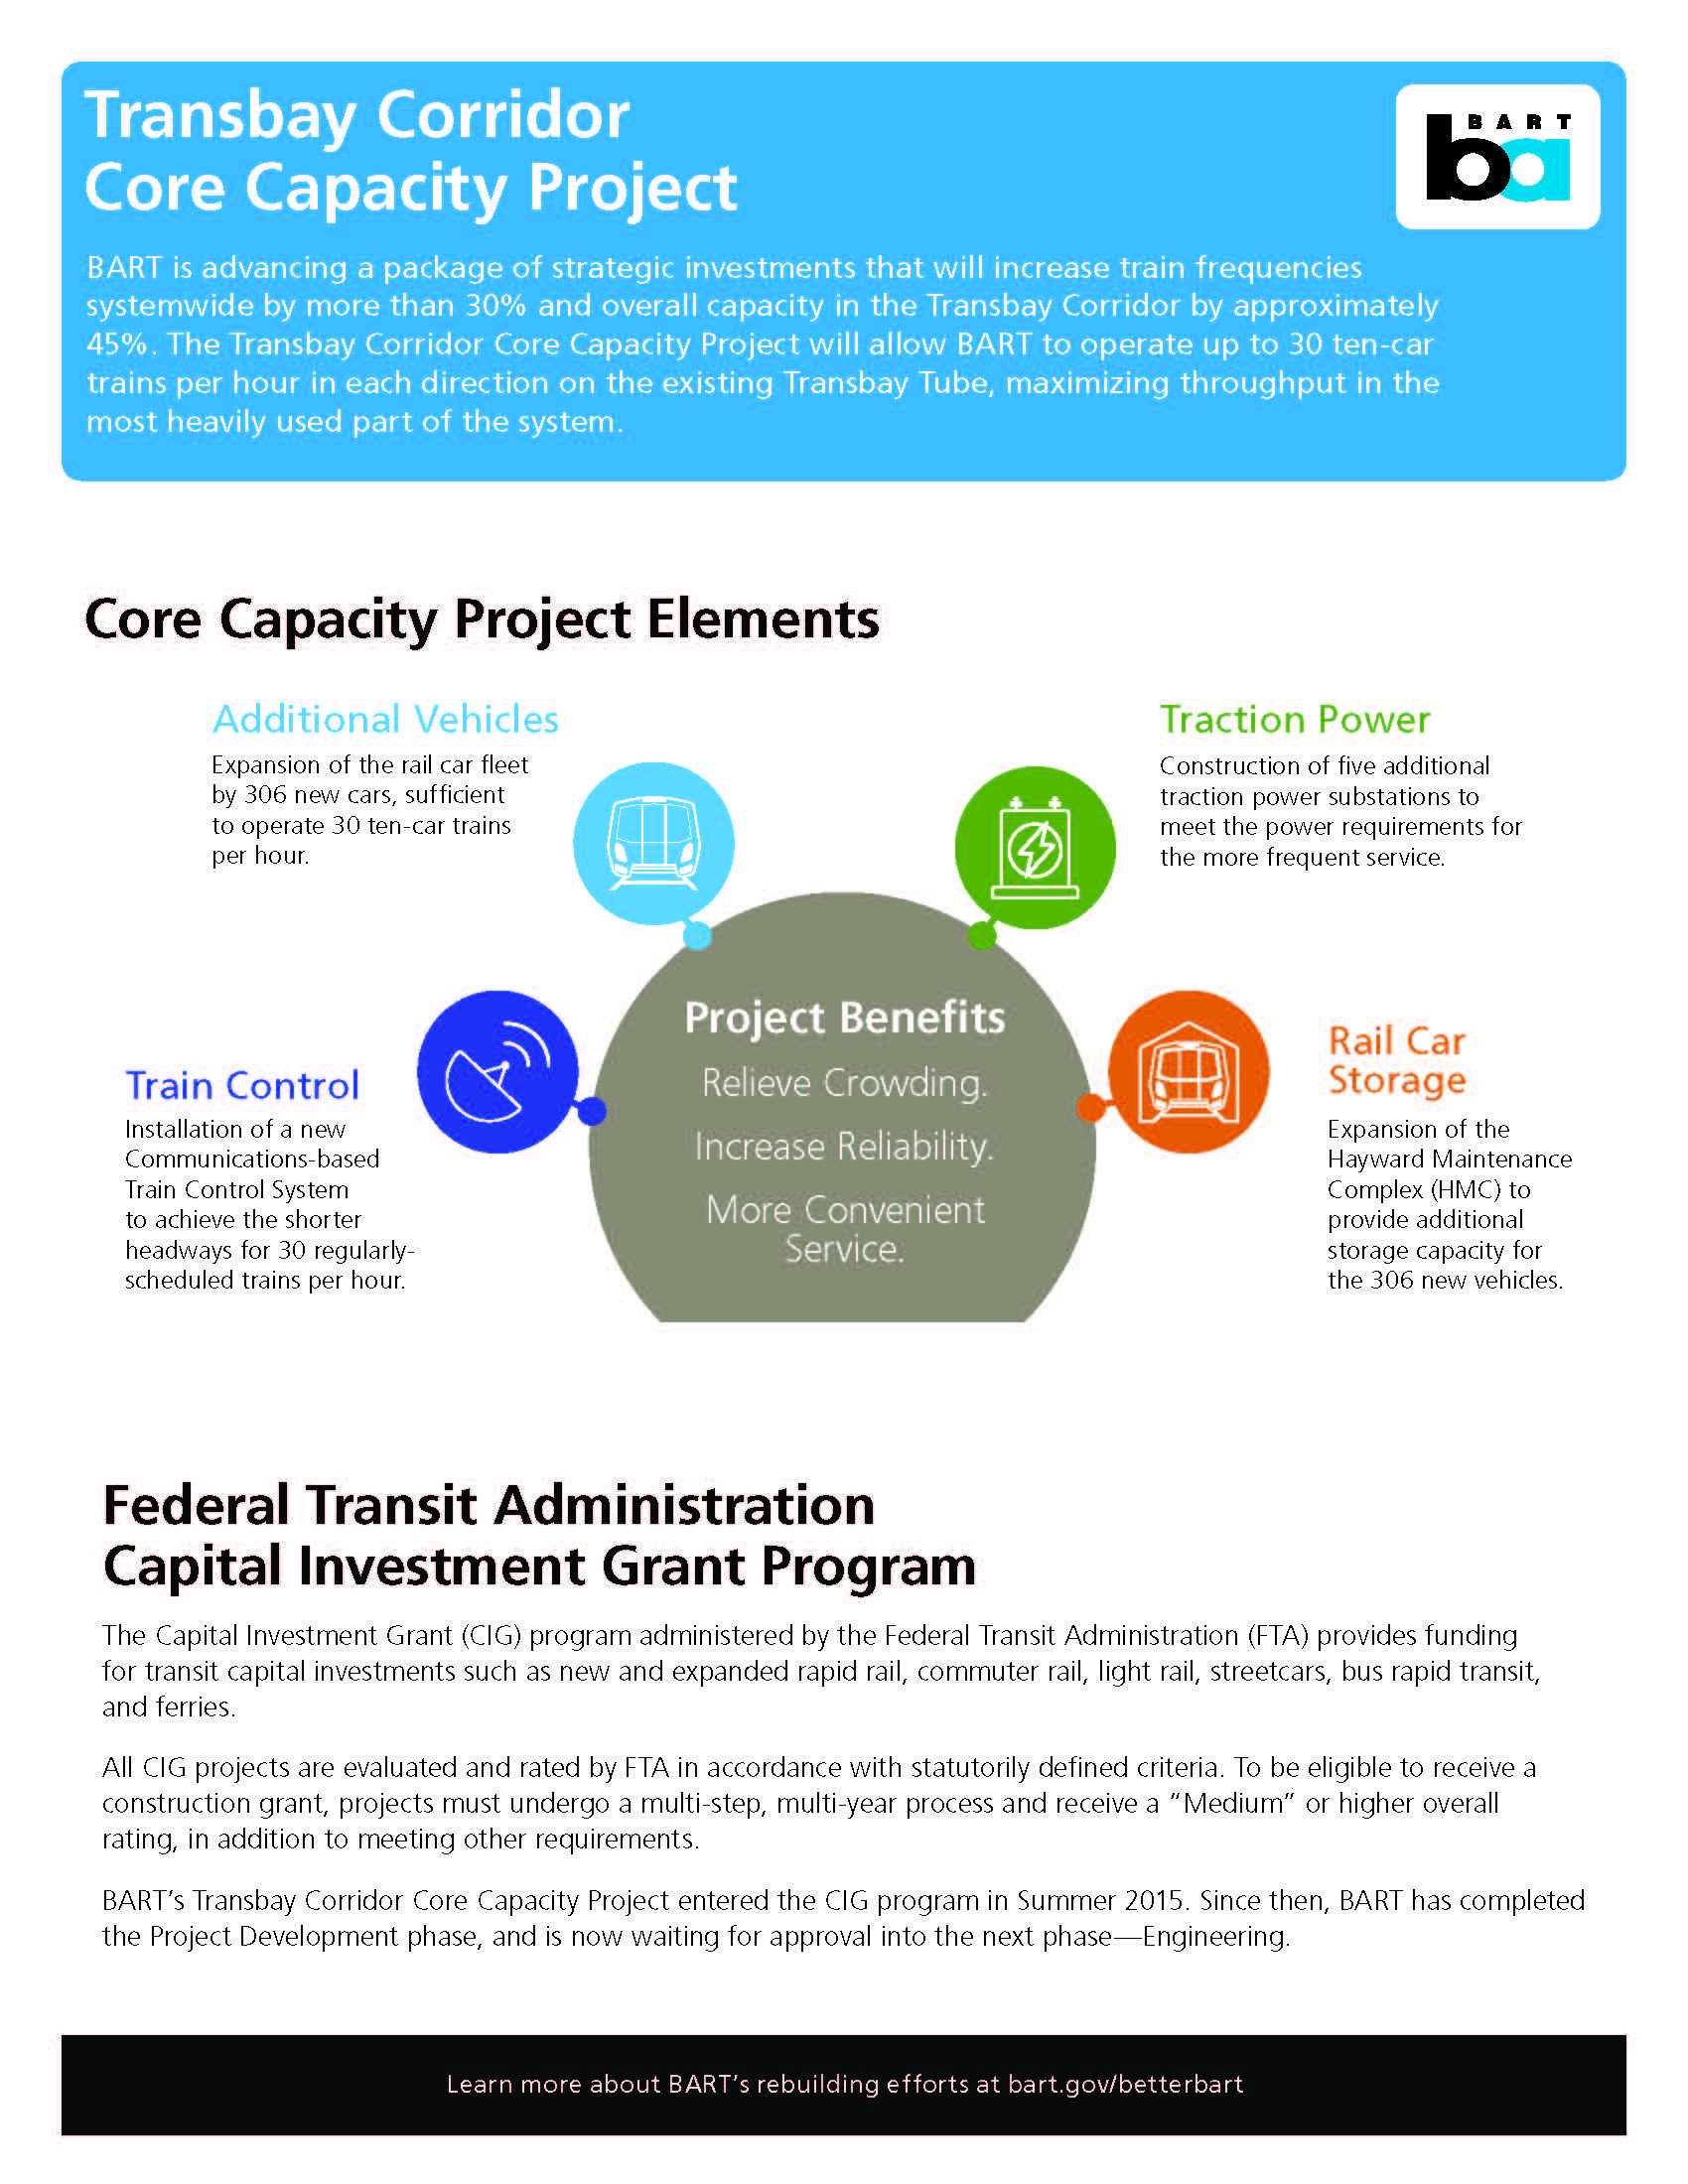 Core Capacity page 1